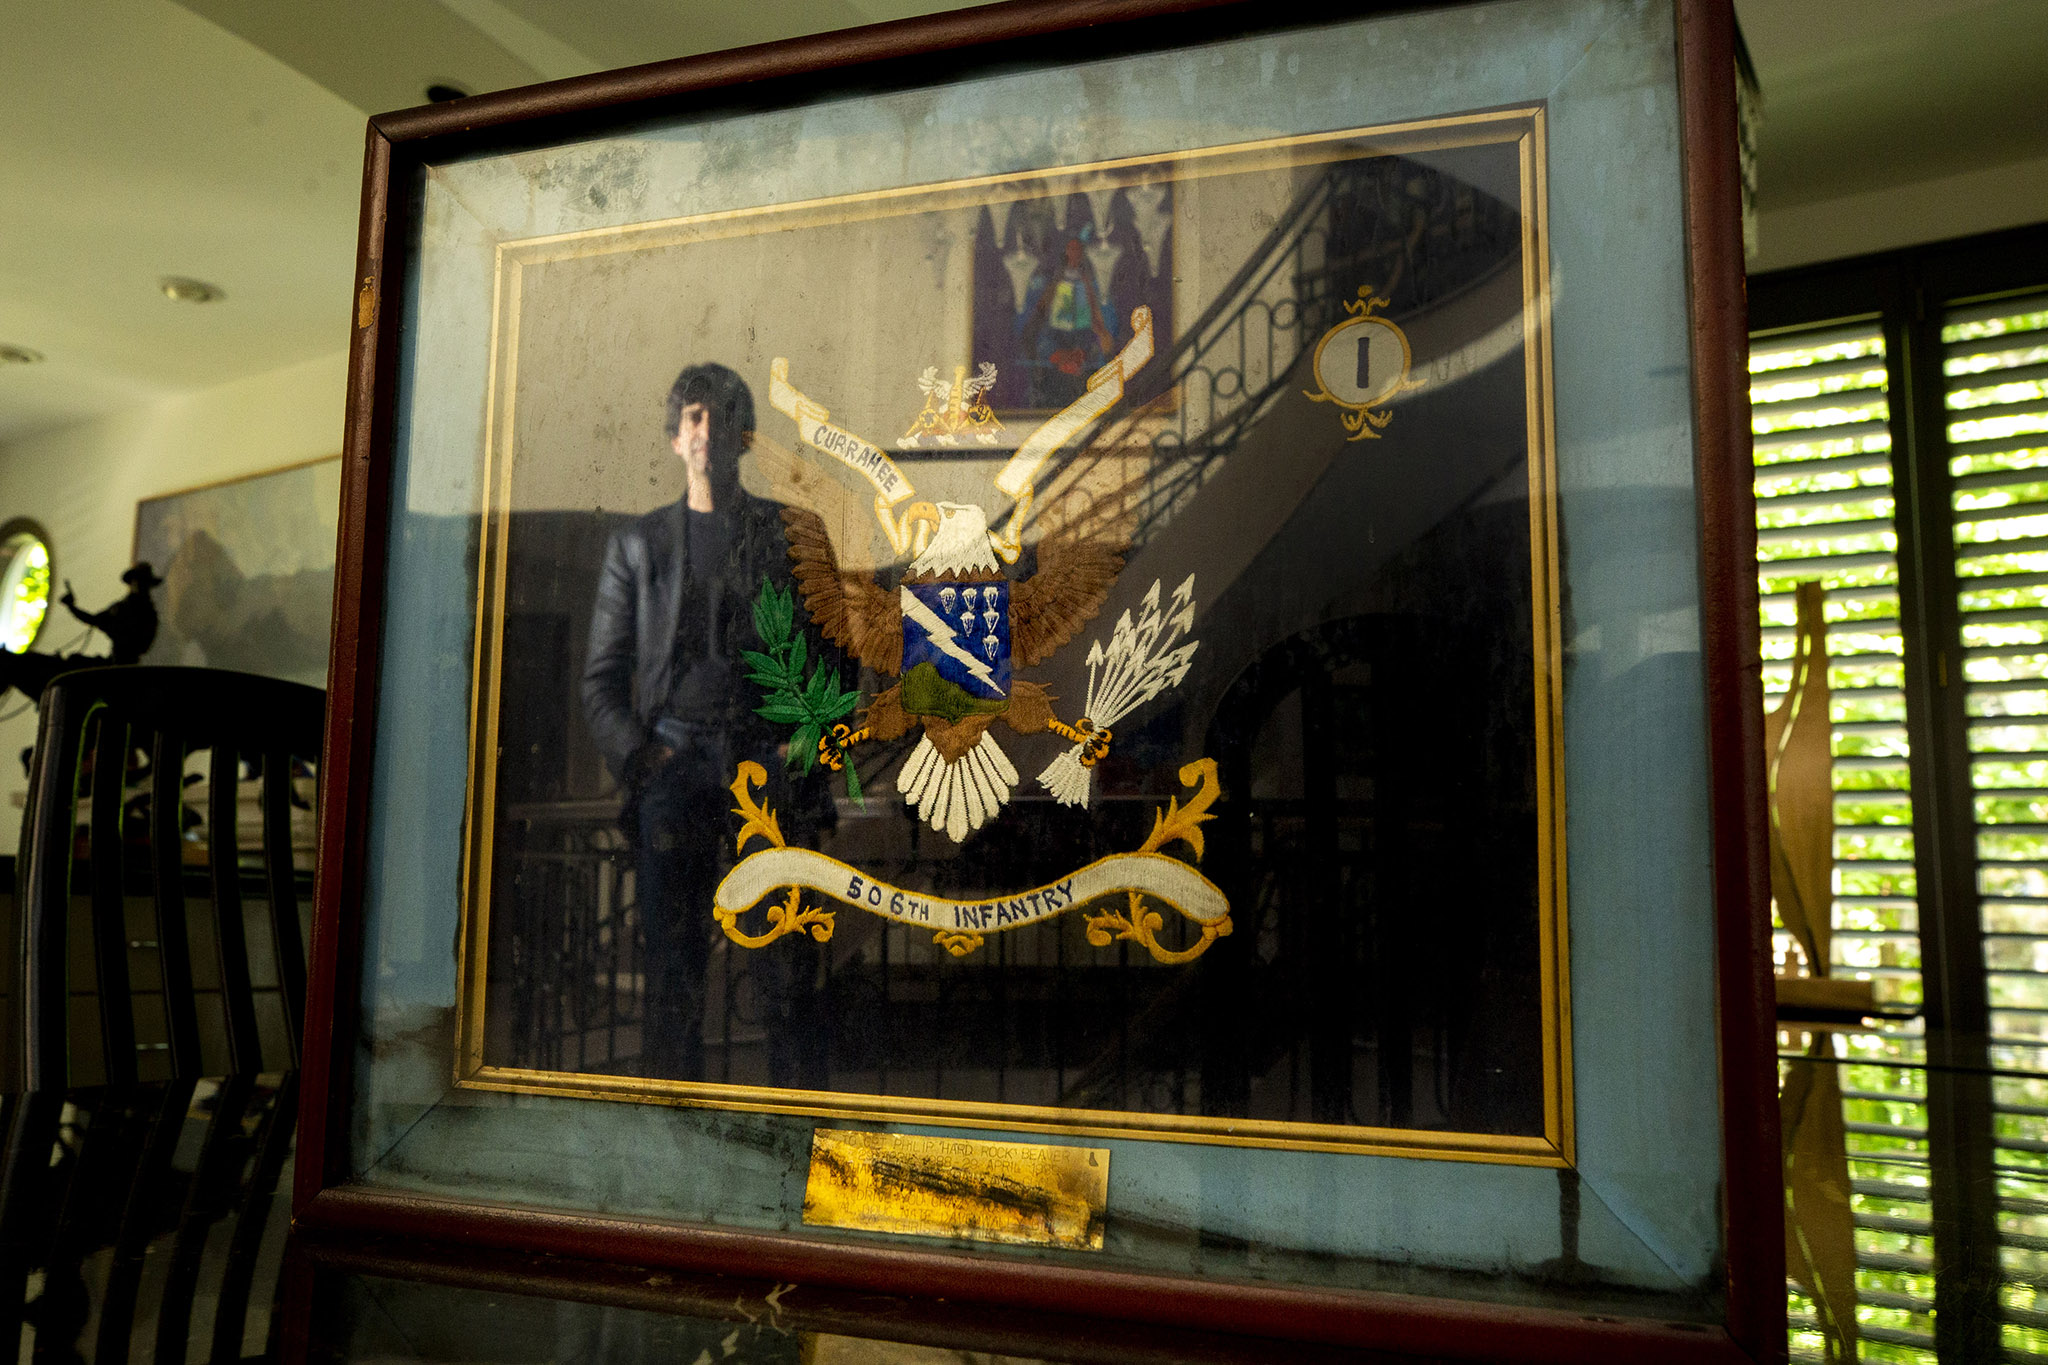 Philip Beaver's infantry colors were framed and hung in his office at the Pentagon when a plane struck the building on Sept. 11, 2001. He still has the frame, uncleaned after smoke and water marred it that day. Sept. 7, 2021.